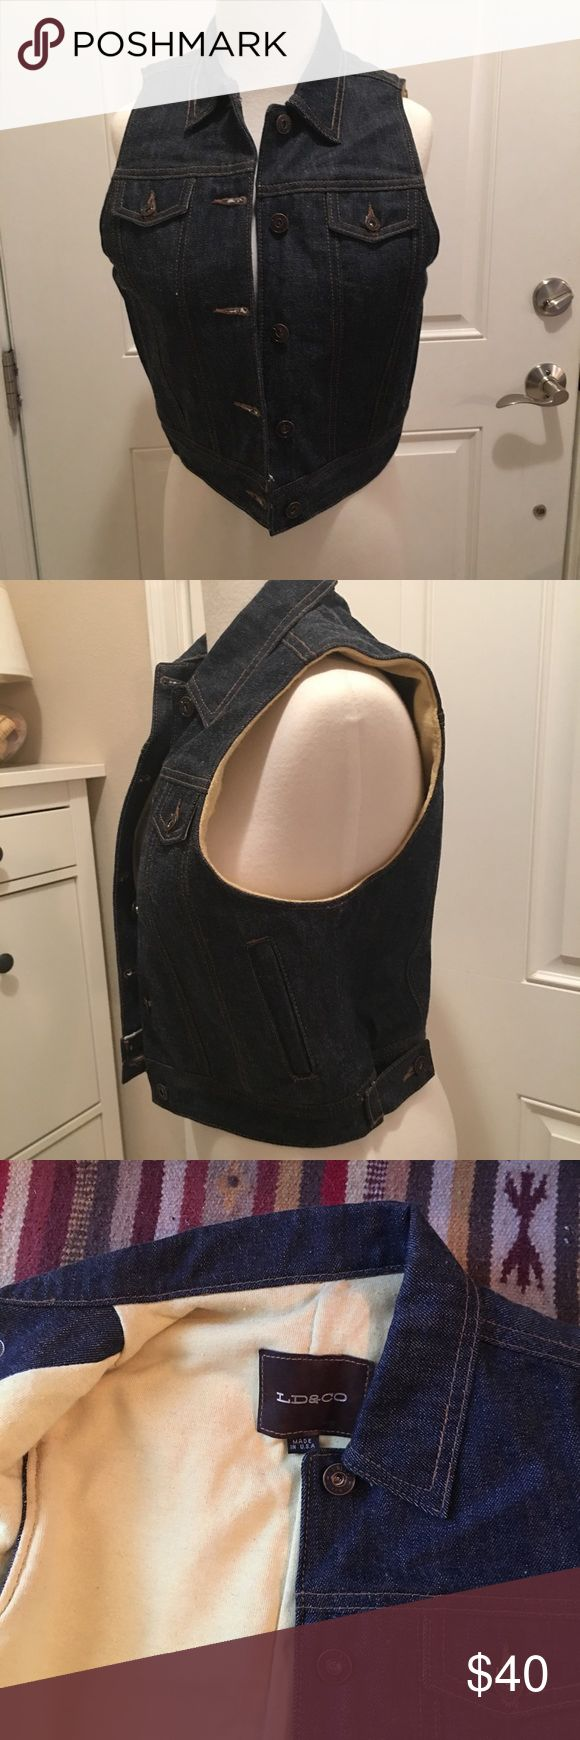 NWOT LD&Co Kevlar Lined Denim Vest This vest is brand-new never been worn. It's Kevlar lined and design for motorcyclist. Has two adjustable buttons on the bottom to make sure it has a perfect fit. Let me know if you have any questions. LD&Co Jackets & Coats Vests